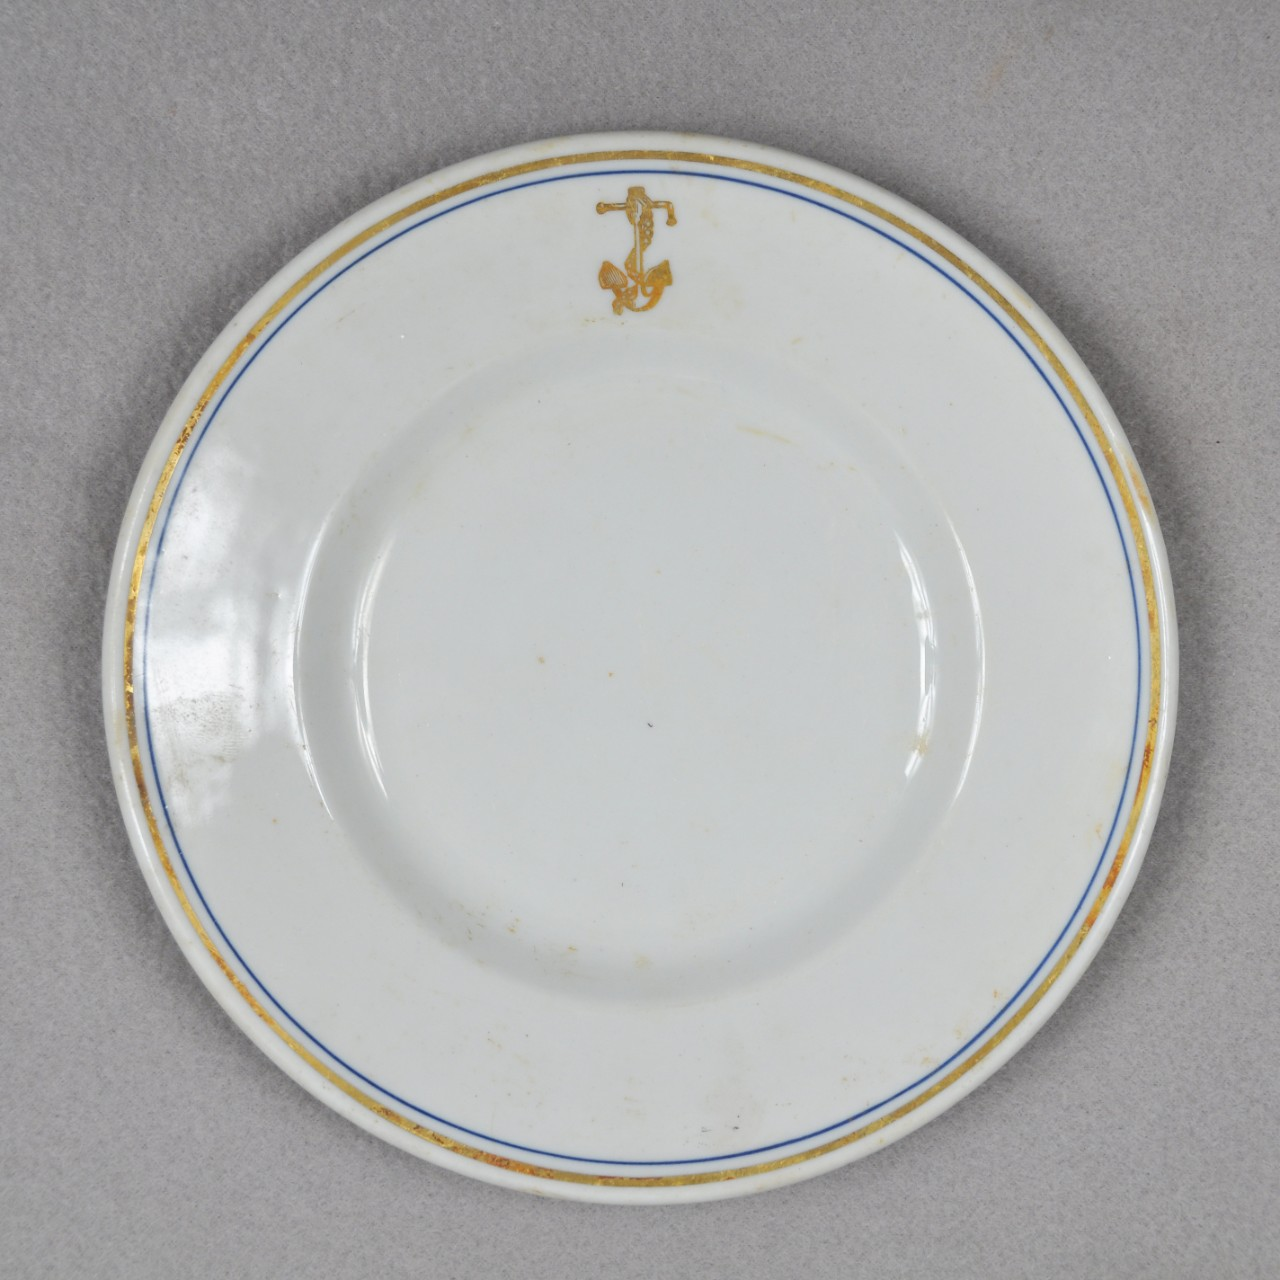 A white ceramic plate with a gold and blue ring around the edge of the face of the plate. There is also a gold anchor with a chain wrapped around it on the lip.